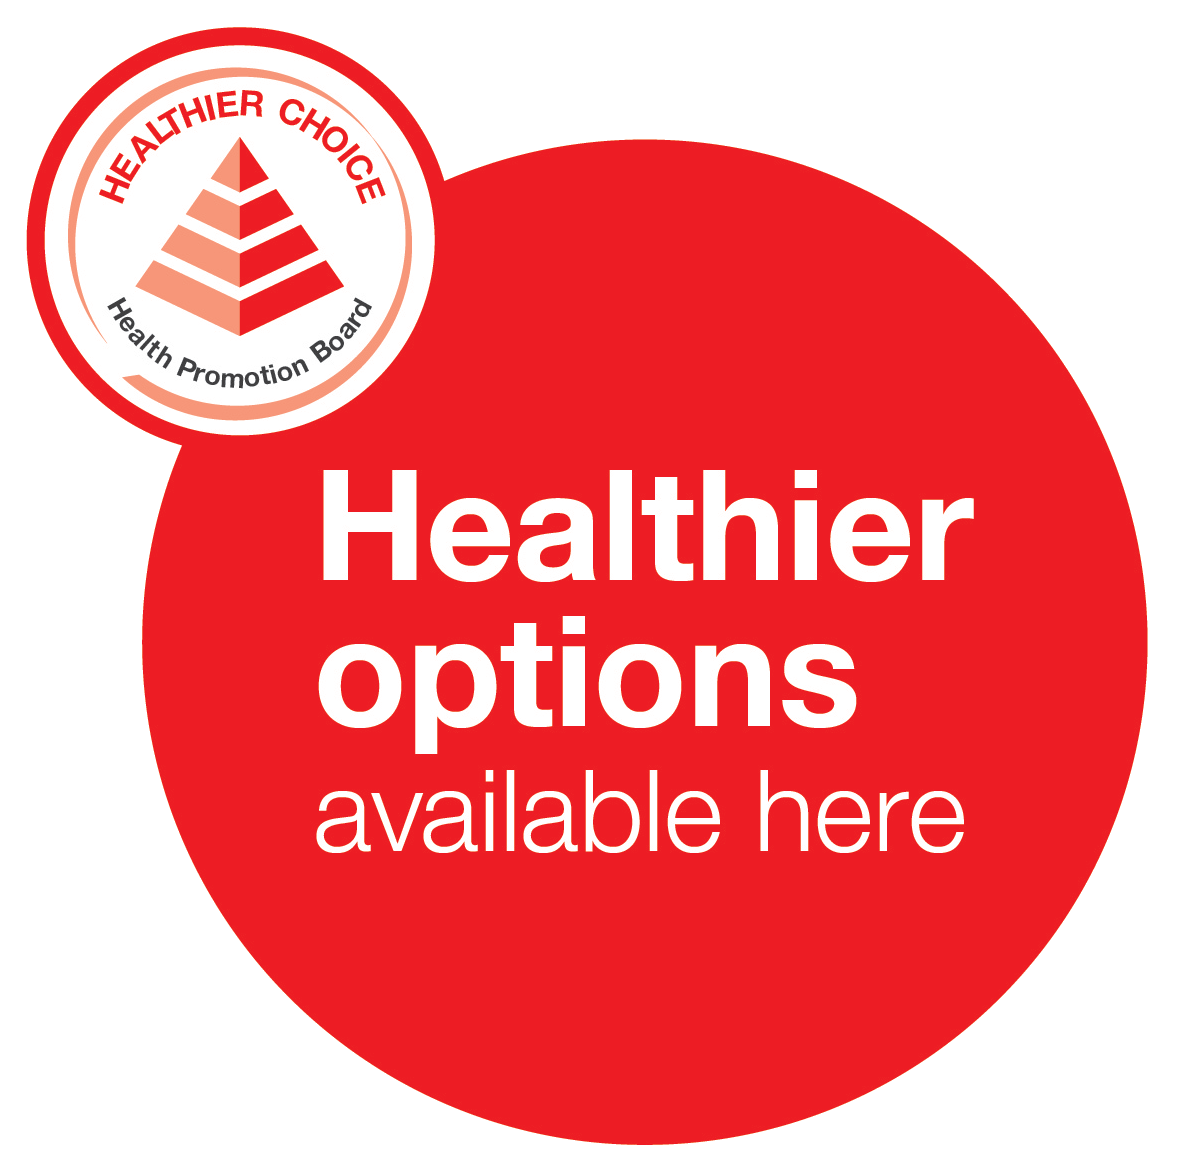 Healthier Options available here